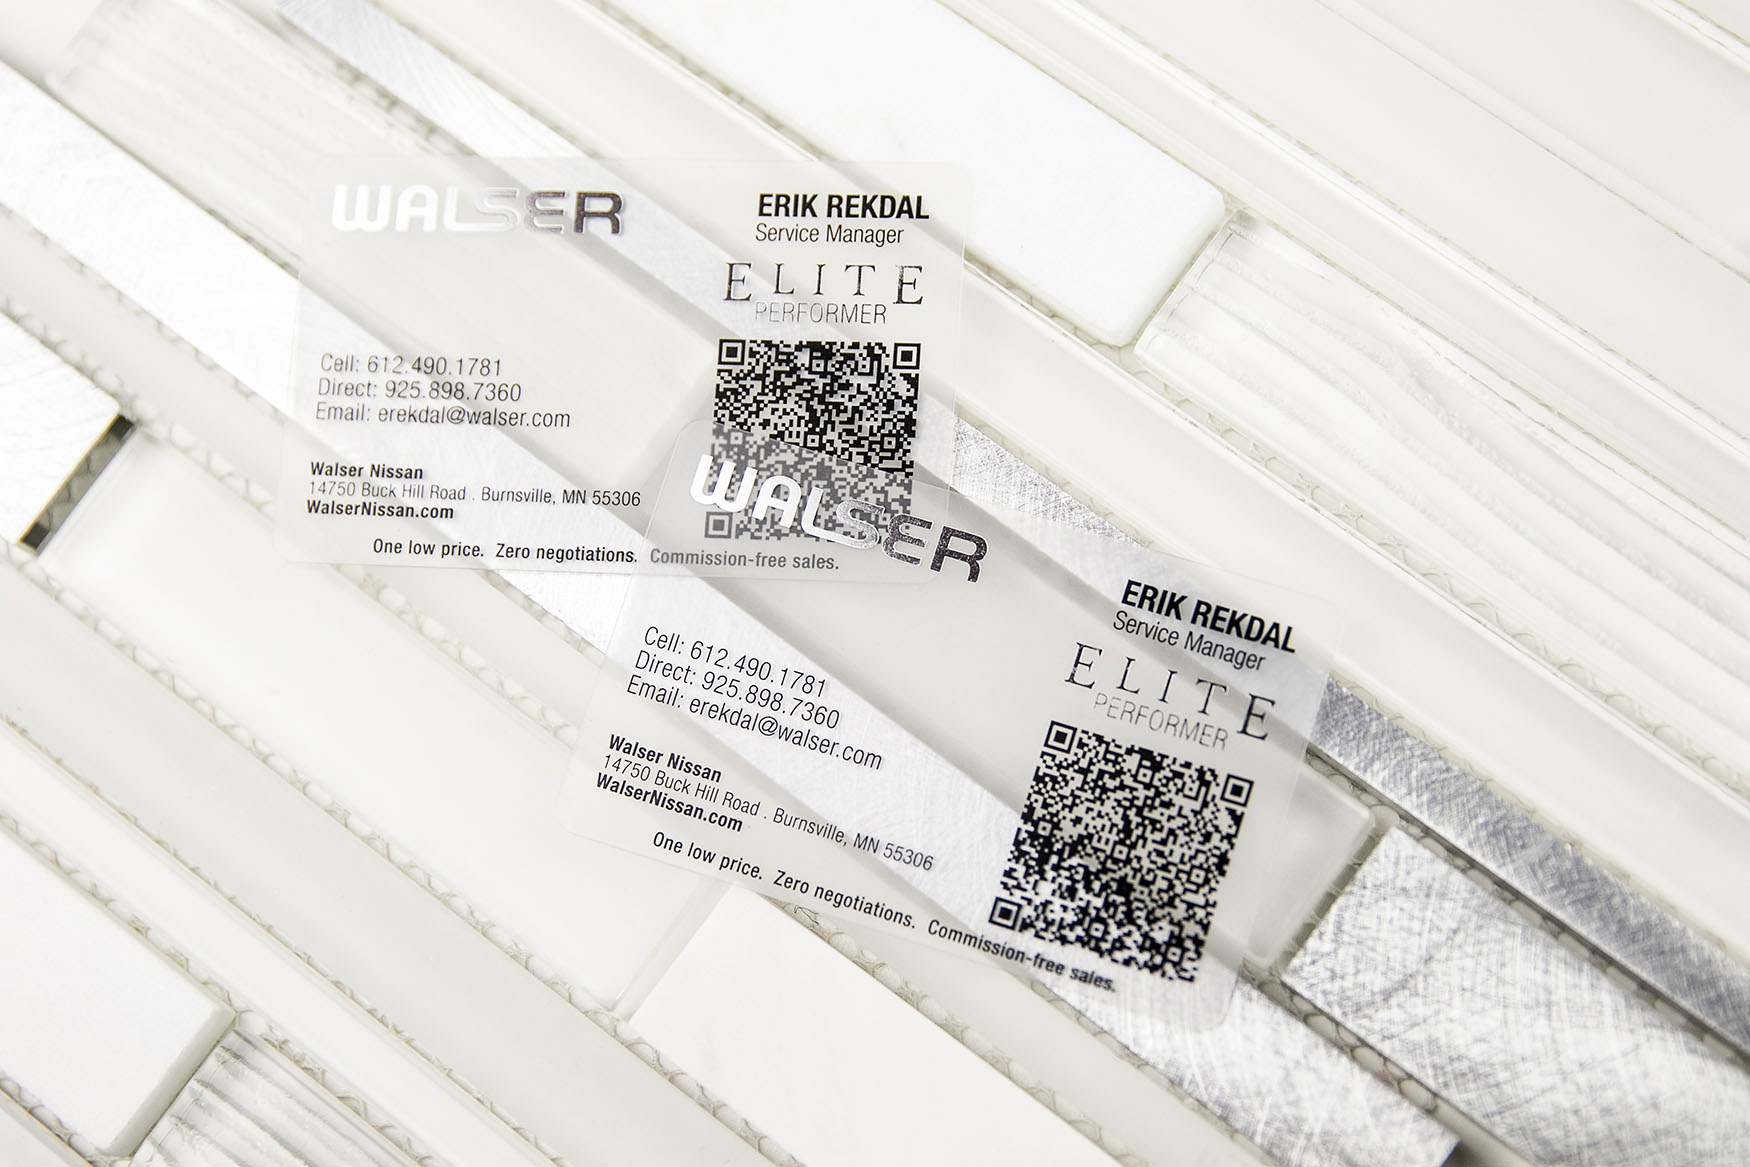 Walser Nissan Automotive Service Manager Frosted Business Card